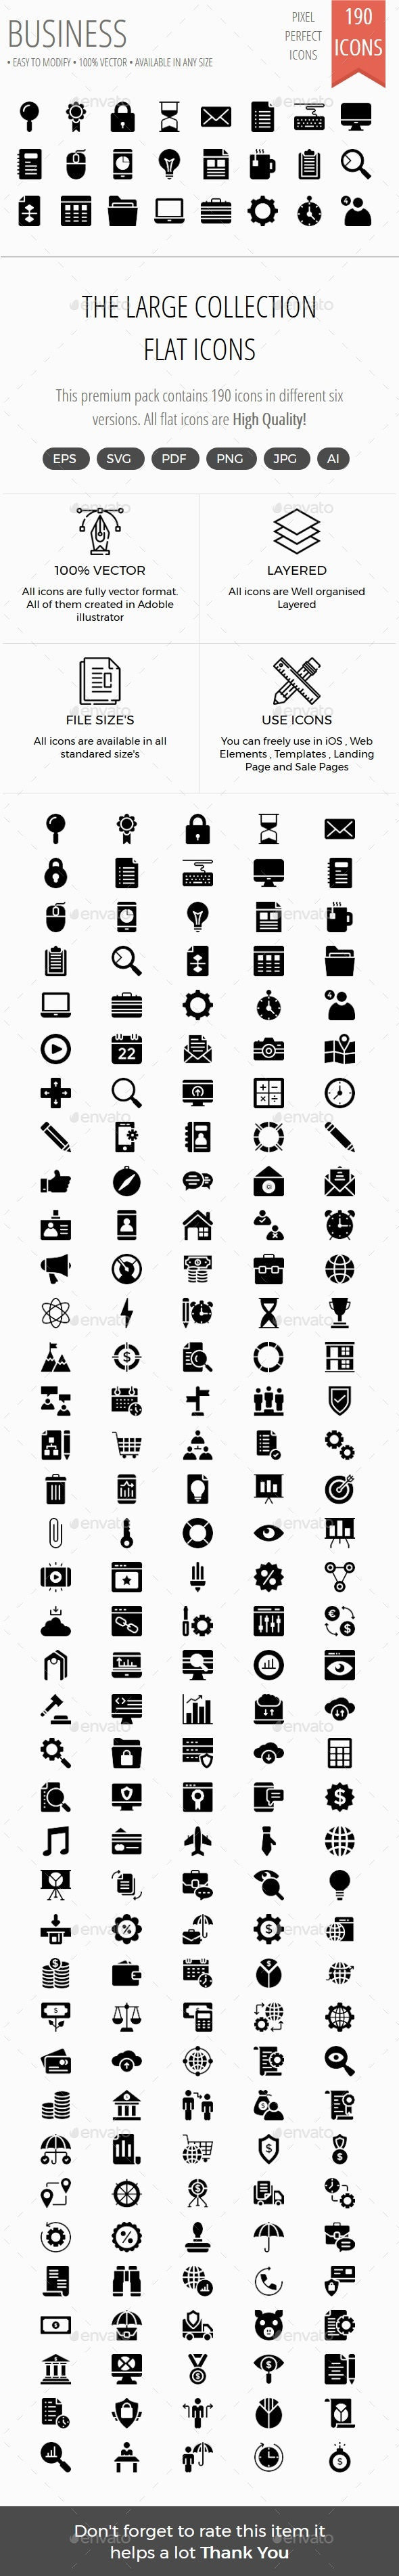 Business Material icons - Business Icons